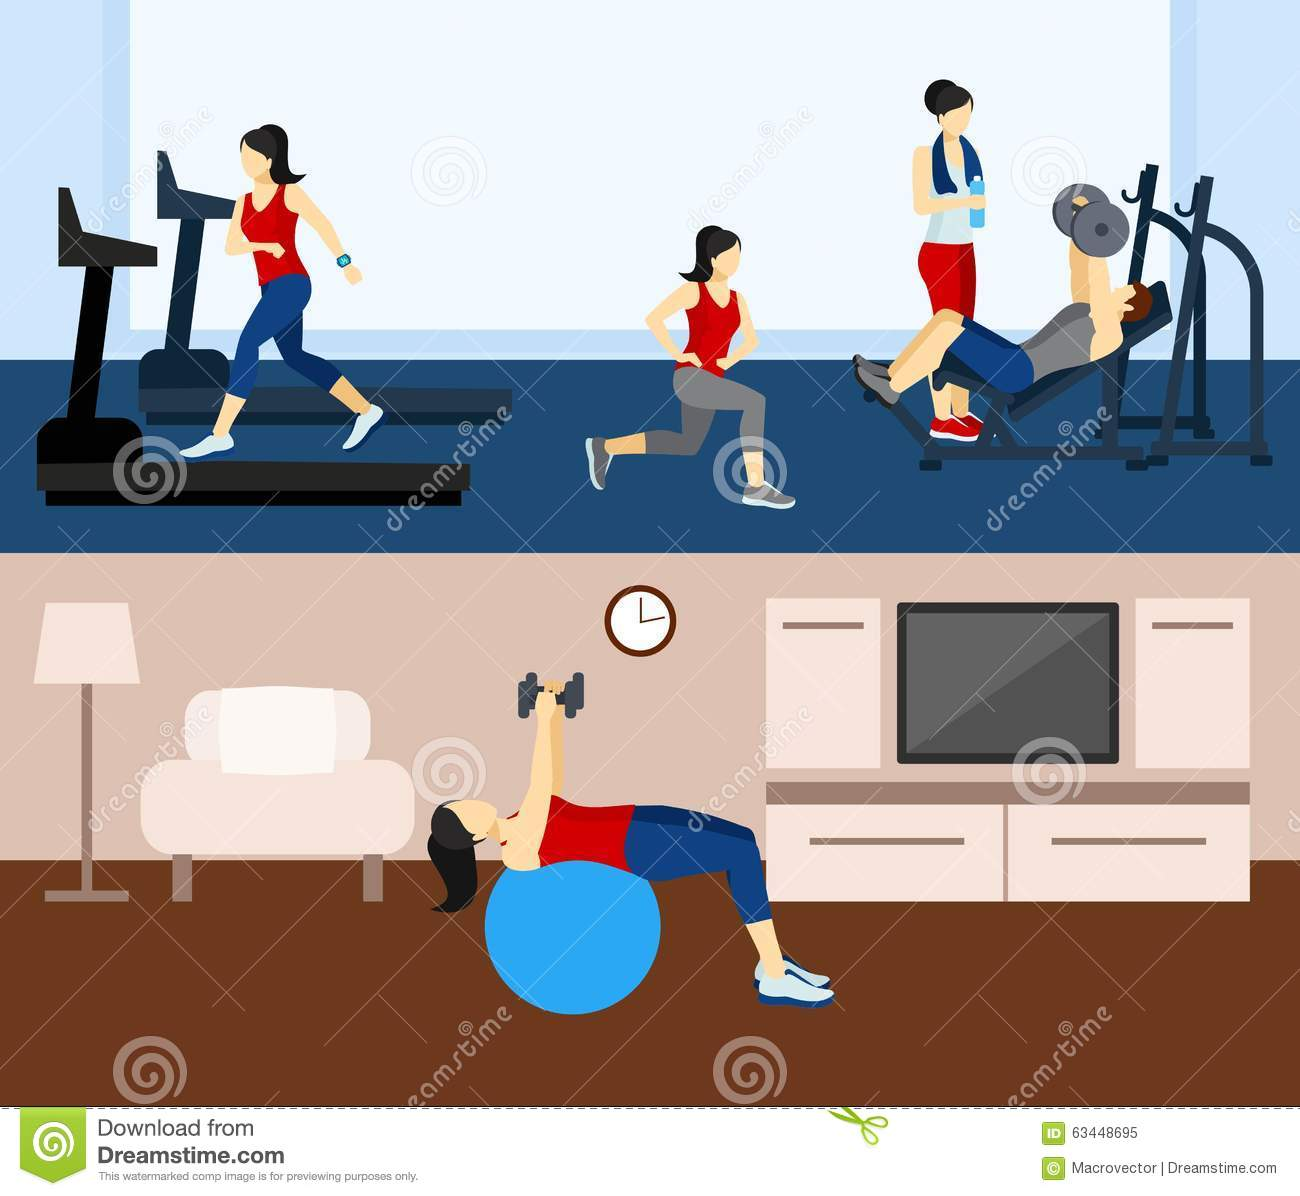 Fitness workout banner stock vector illustration of body